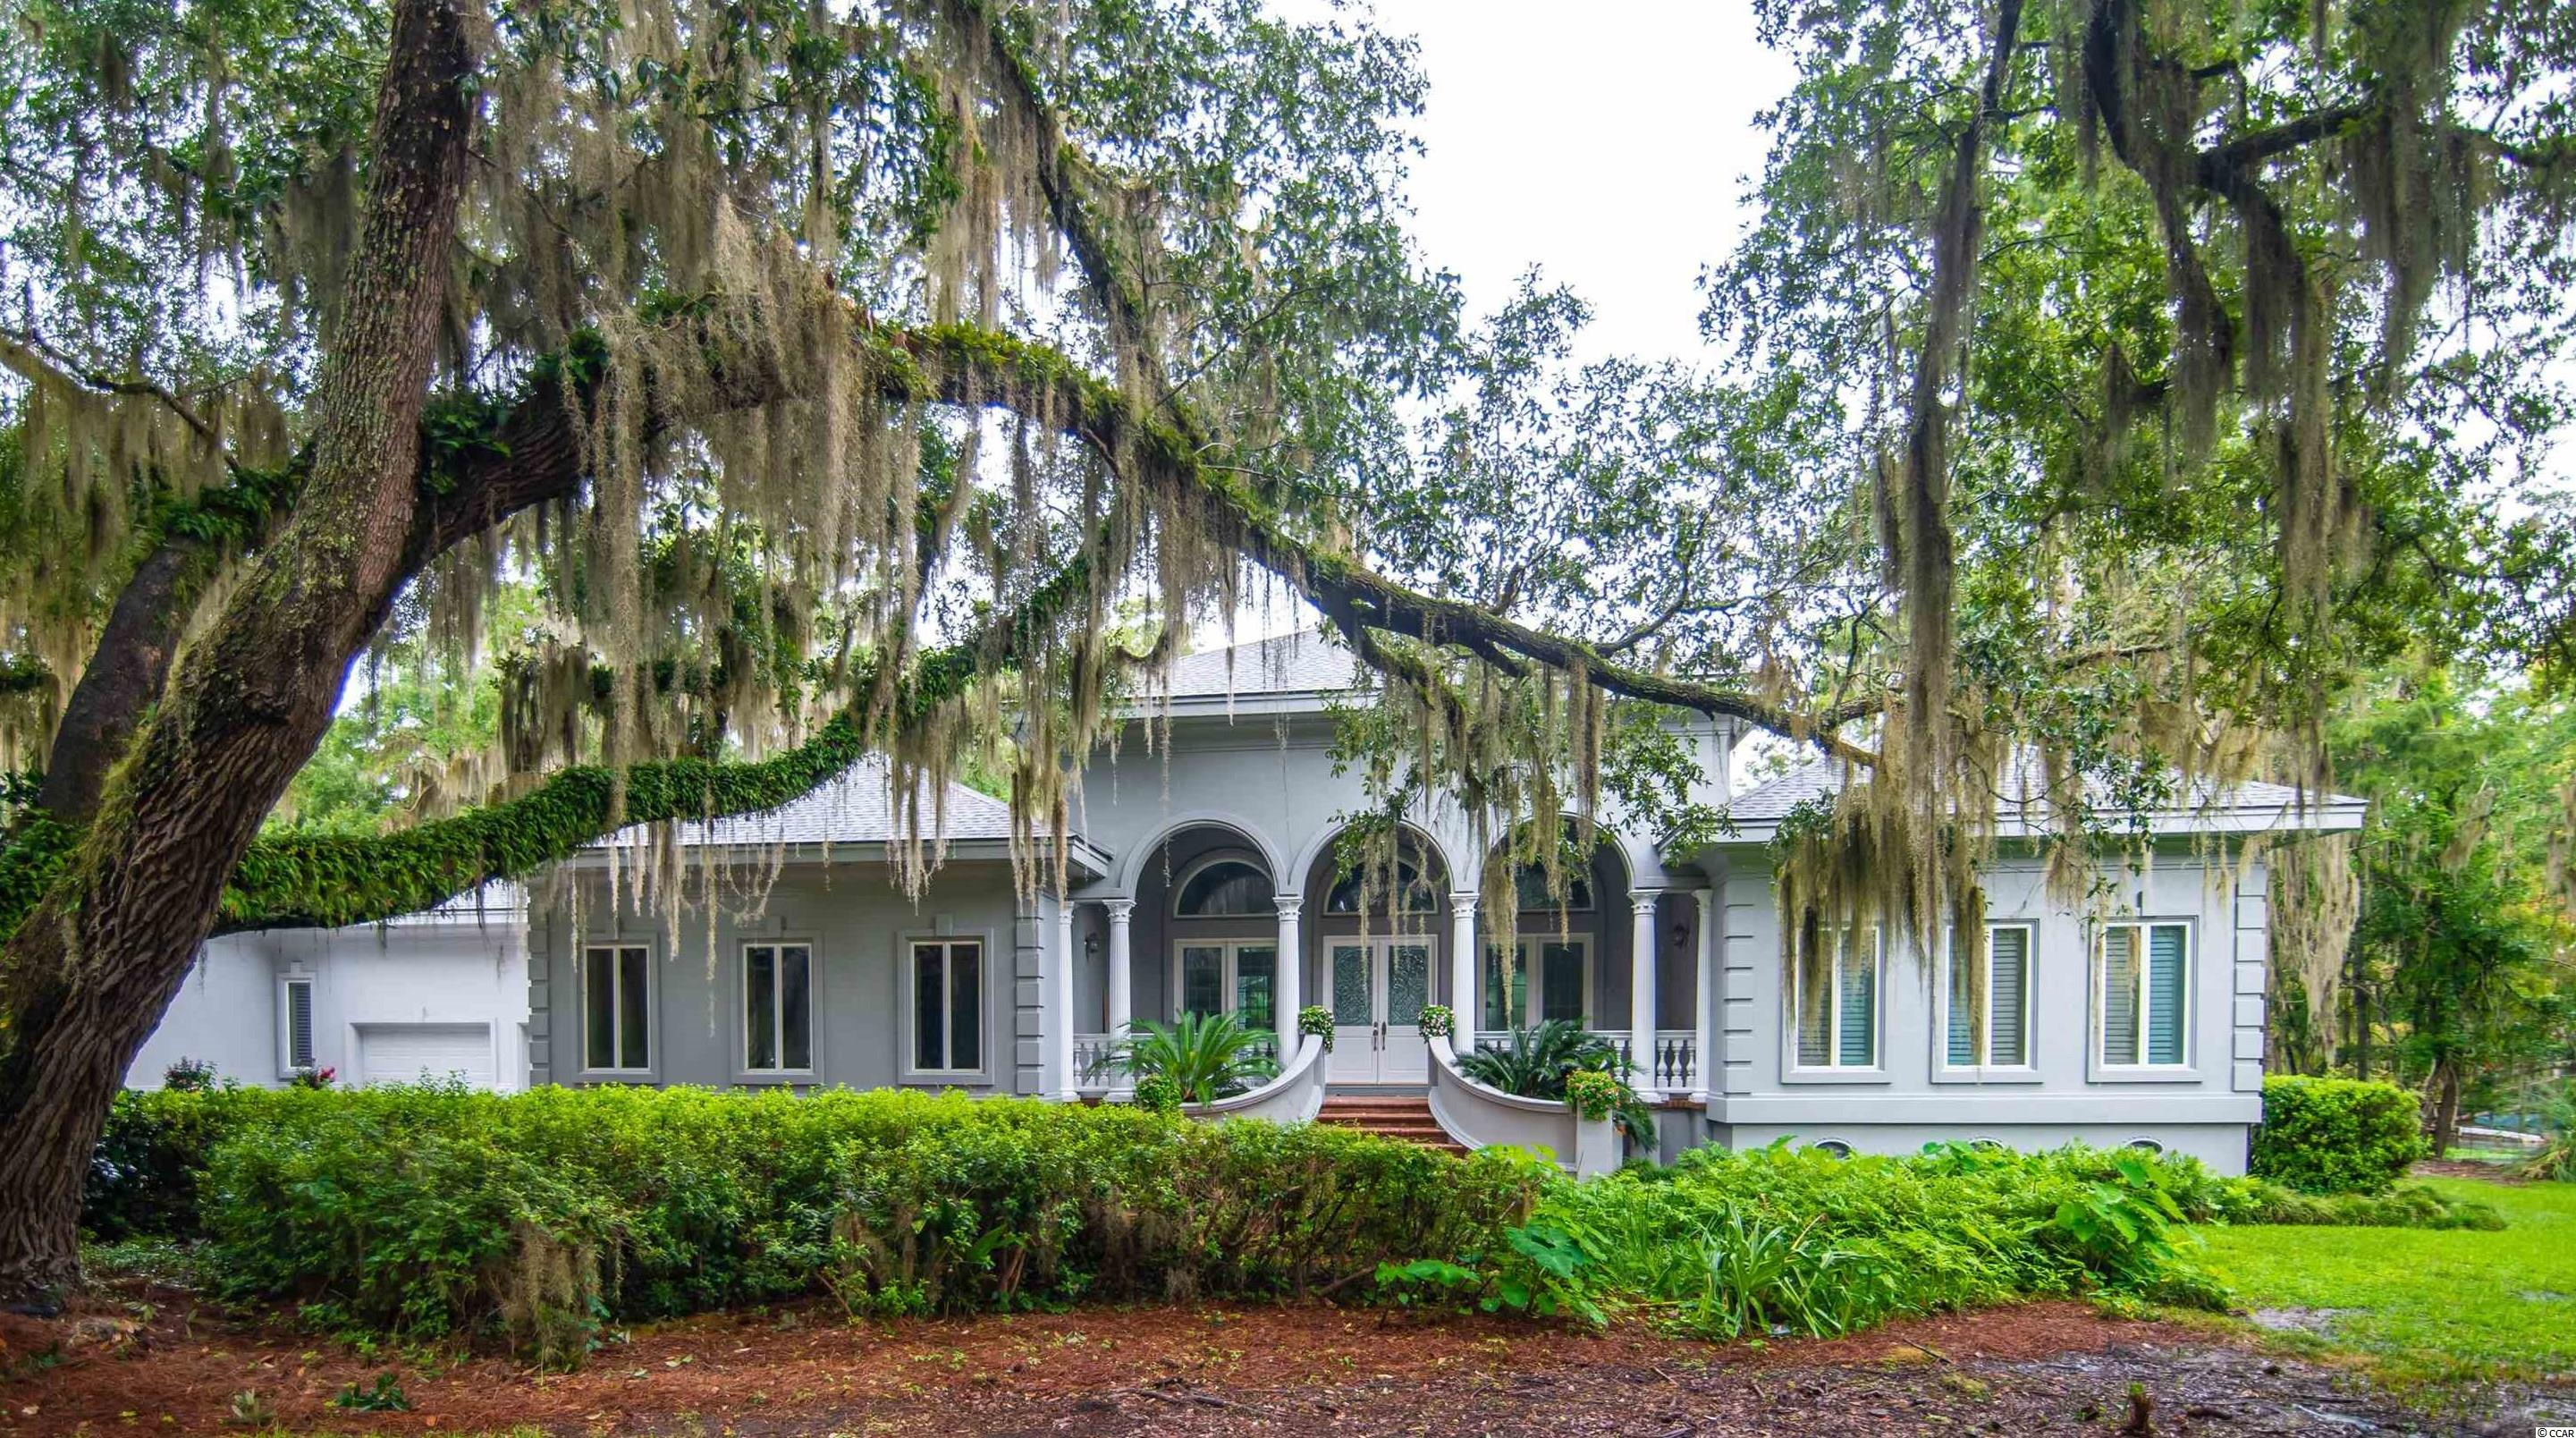 """This splendid, gated home, never on the market before, offers unprecedented privacy of nearly 1.2 acres of your very own """"mini-Brookgreen Gardens."""" This rare property is completely private with protected marshlands along the entire western border. Over 40 majestic laurel, black, and live oaks dripping with moss and surrounded by azaleas, cover the grounds providing unparalleled Lowcountry beauty and cool shade.  This estate offers 180-degree water and marsh views and its own private dock with tidal, Oatland Creek access to the Waccamaw River. THIS is the property that everyone has been waiting for!   This luxury residence, two years in its construction by craftsmen, showcases a palladium-style front porch, loggia great room with Turkish marble floors, a marble fireplace, custom crown molding throughout, an impressive 21-foot formal entrance, cut-crystal chandeliers, original hardwood floors, and a private, custom pool and columned lanai as its centerpiece. The owner's bedroom features his and her bathroom suites, and a pecky cypress-lined, private den which can also function as a separate bedroom if desired. Two other en-suite bedrooms offer privacy in the south side of the house. The current formal dining room can easily be repurposed as a splendid family room with glorious views of the sunset.   Surrounded by this quiet and peaceful, large, natural property, you will only have fleeting glimpses of neighbors across the water. The only sounds are water birds on the marsh and owls in the oaks. This property simply must be seen to appreciate how private it is, even though it's so close to the conveniences of Pawleys Island. Not only will you enjoy the privacy of your own gated property, the full cul-de-sac can be yours with the purchase of the adjacent lot, making the entire end of the street your private piece of heaven.   Enjoy your exclusive community pool, active clubhouse, and the Dan Maples Signature Willbrook Plantation Golf Club, all just a short golf cart rid"""